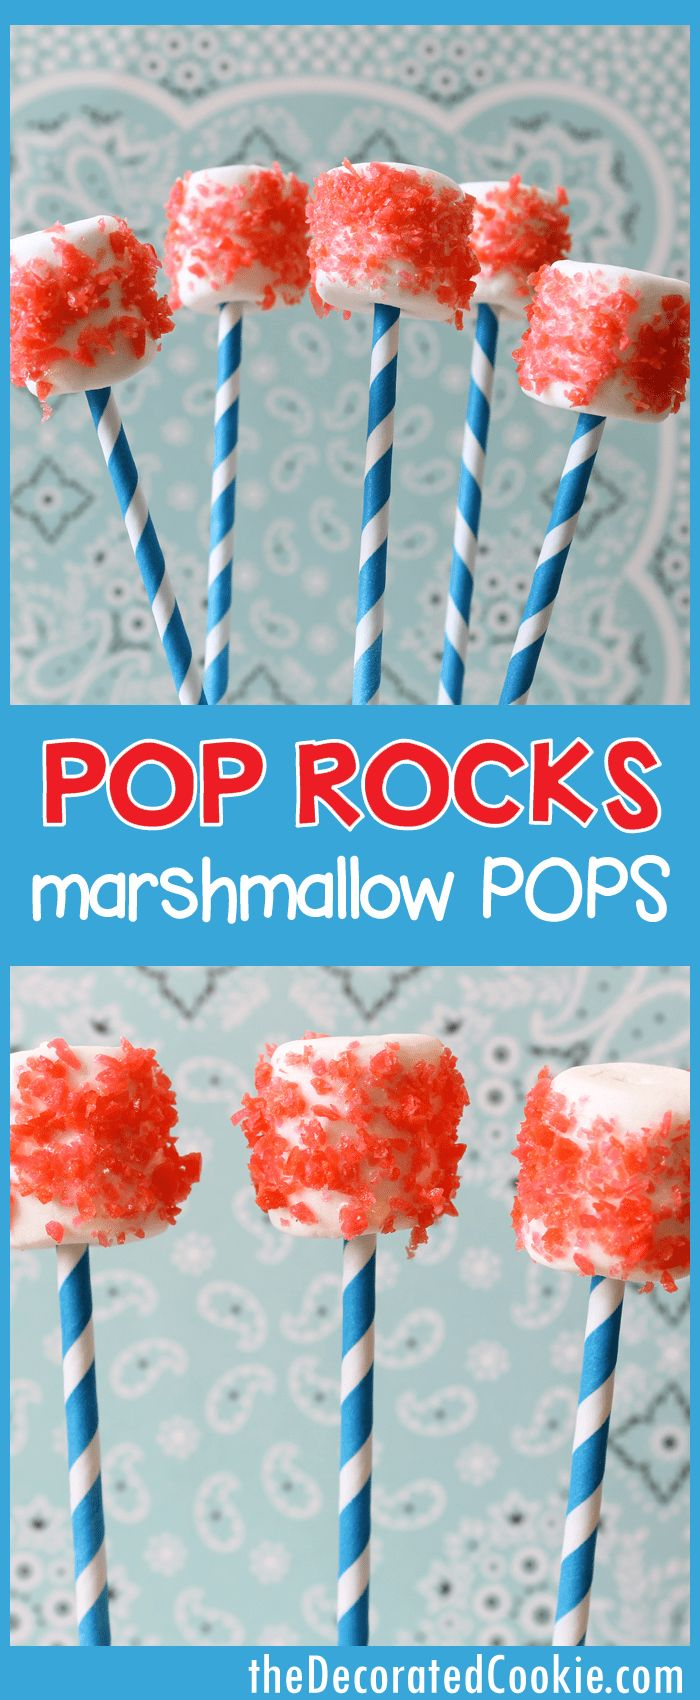 Pop Rocks marshmallow pops for the 4th of July